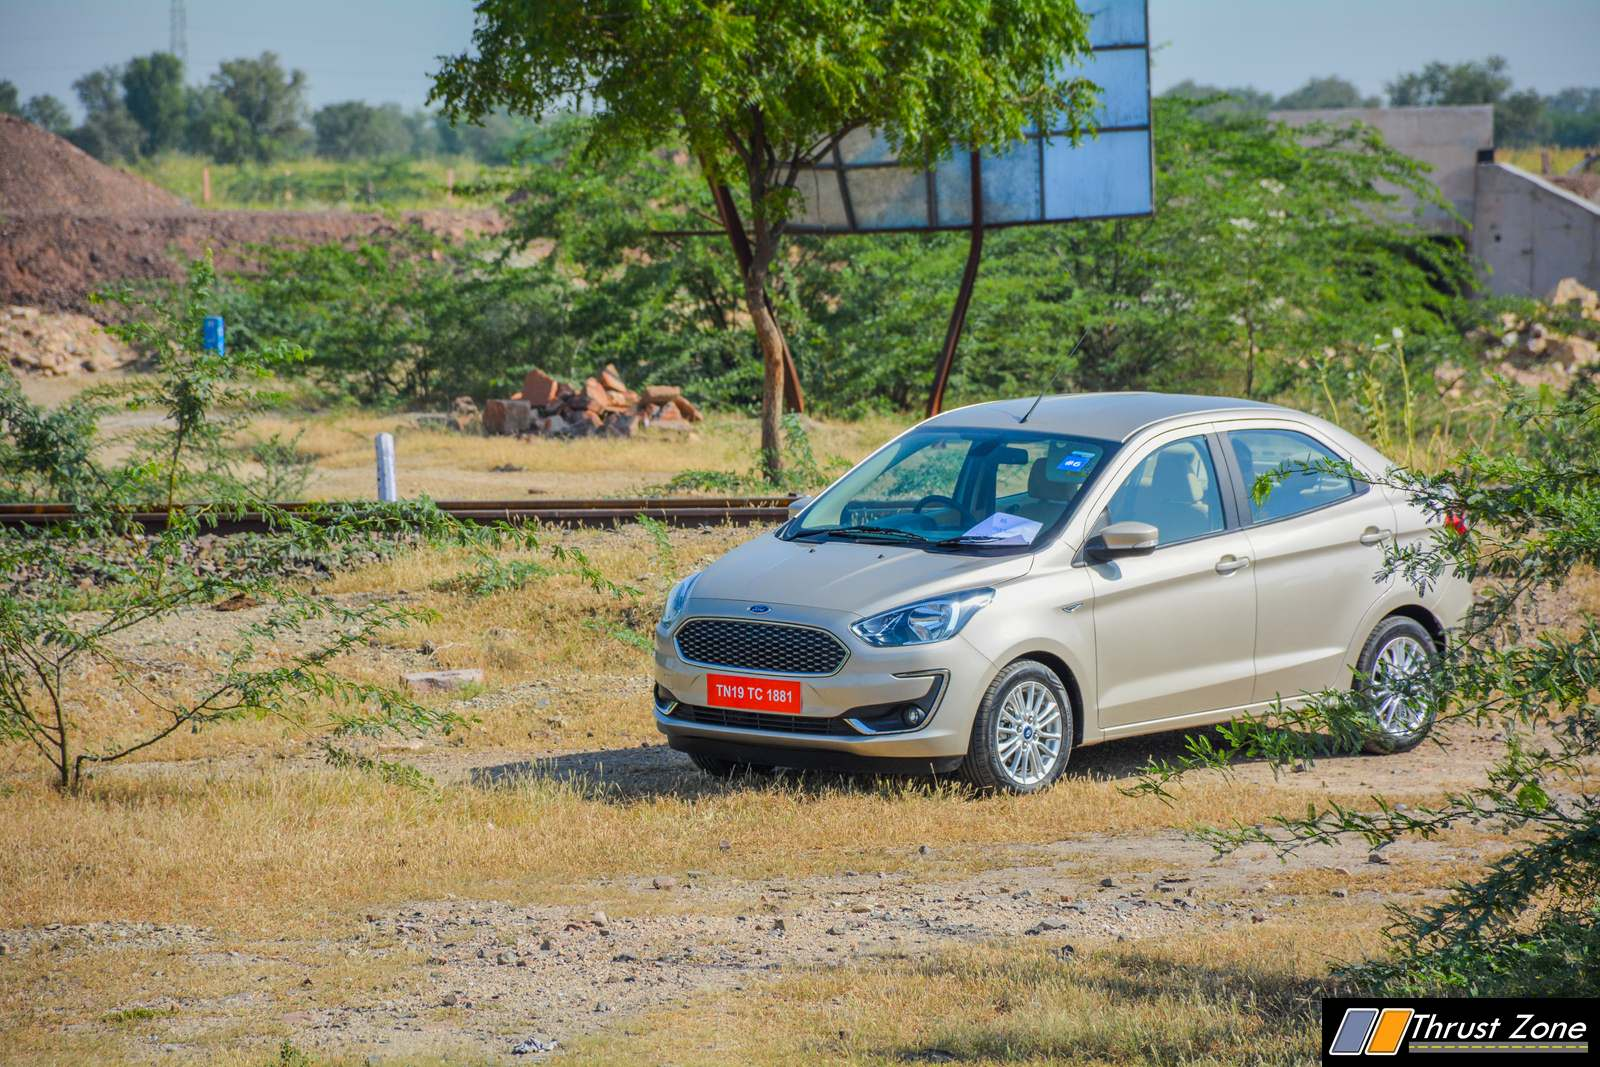 https://www.thrustzone.com/wp-content/uploads/2018/10/2018-Ford-Aspire-facelift-review-29.jpg